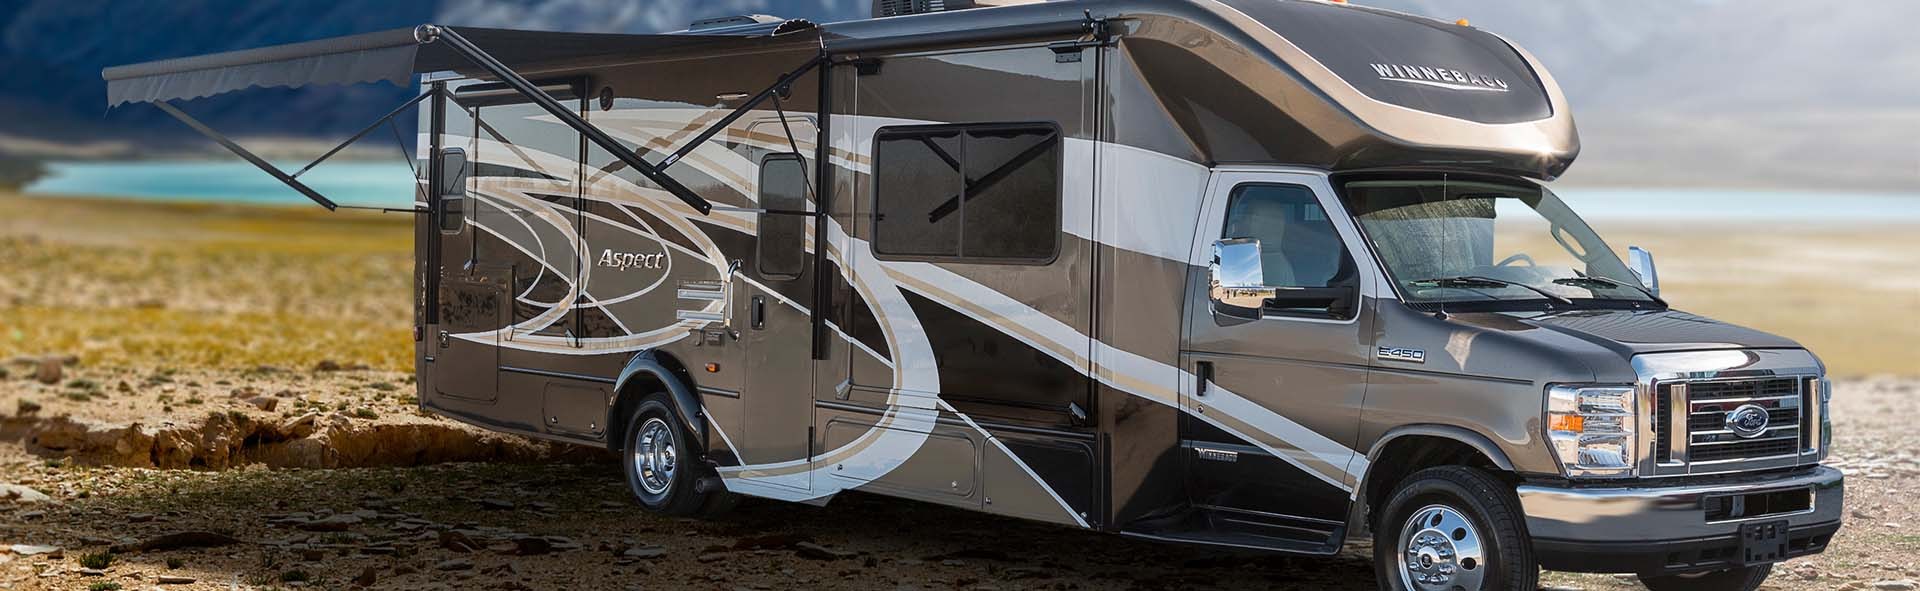 what-to-look-for-in-an-rv-space